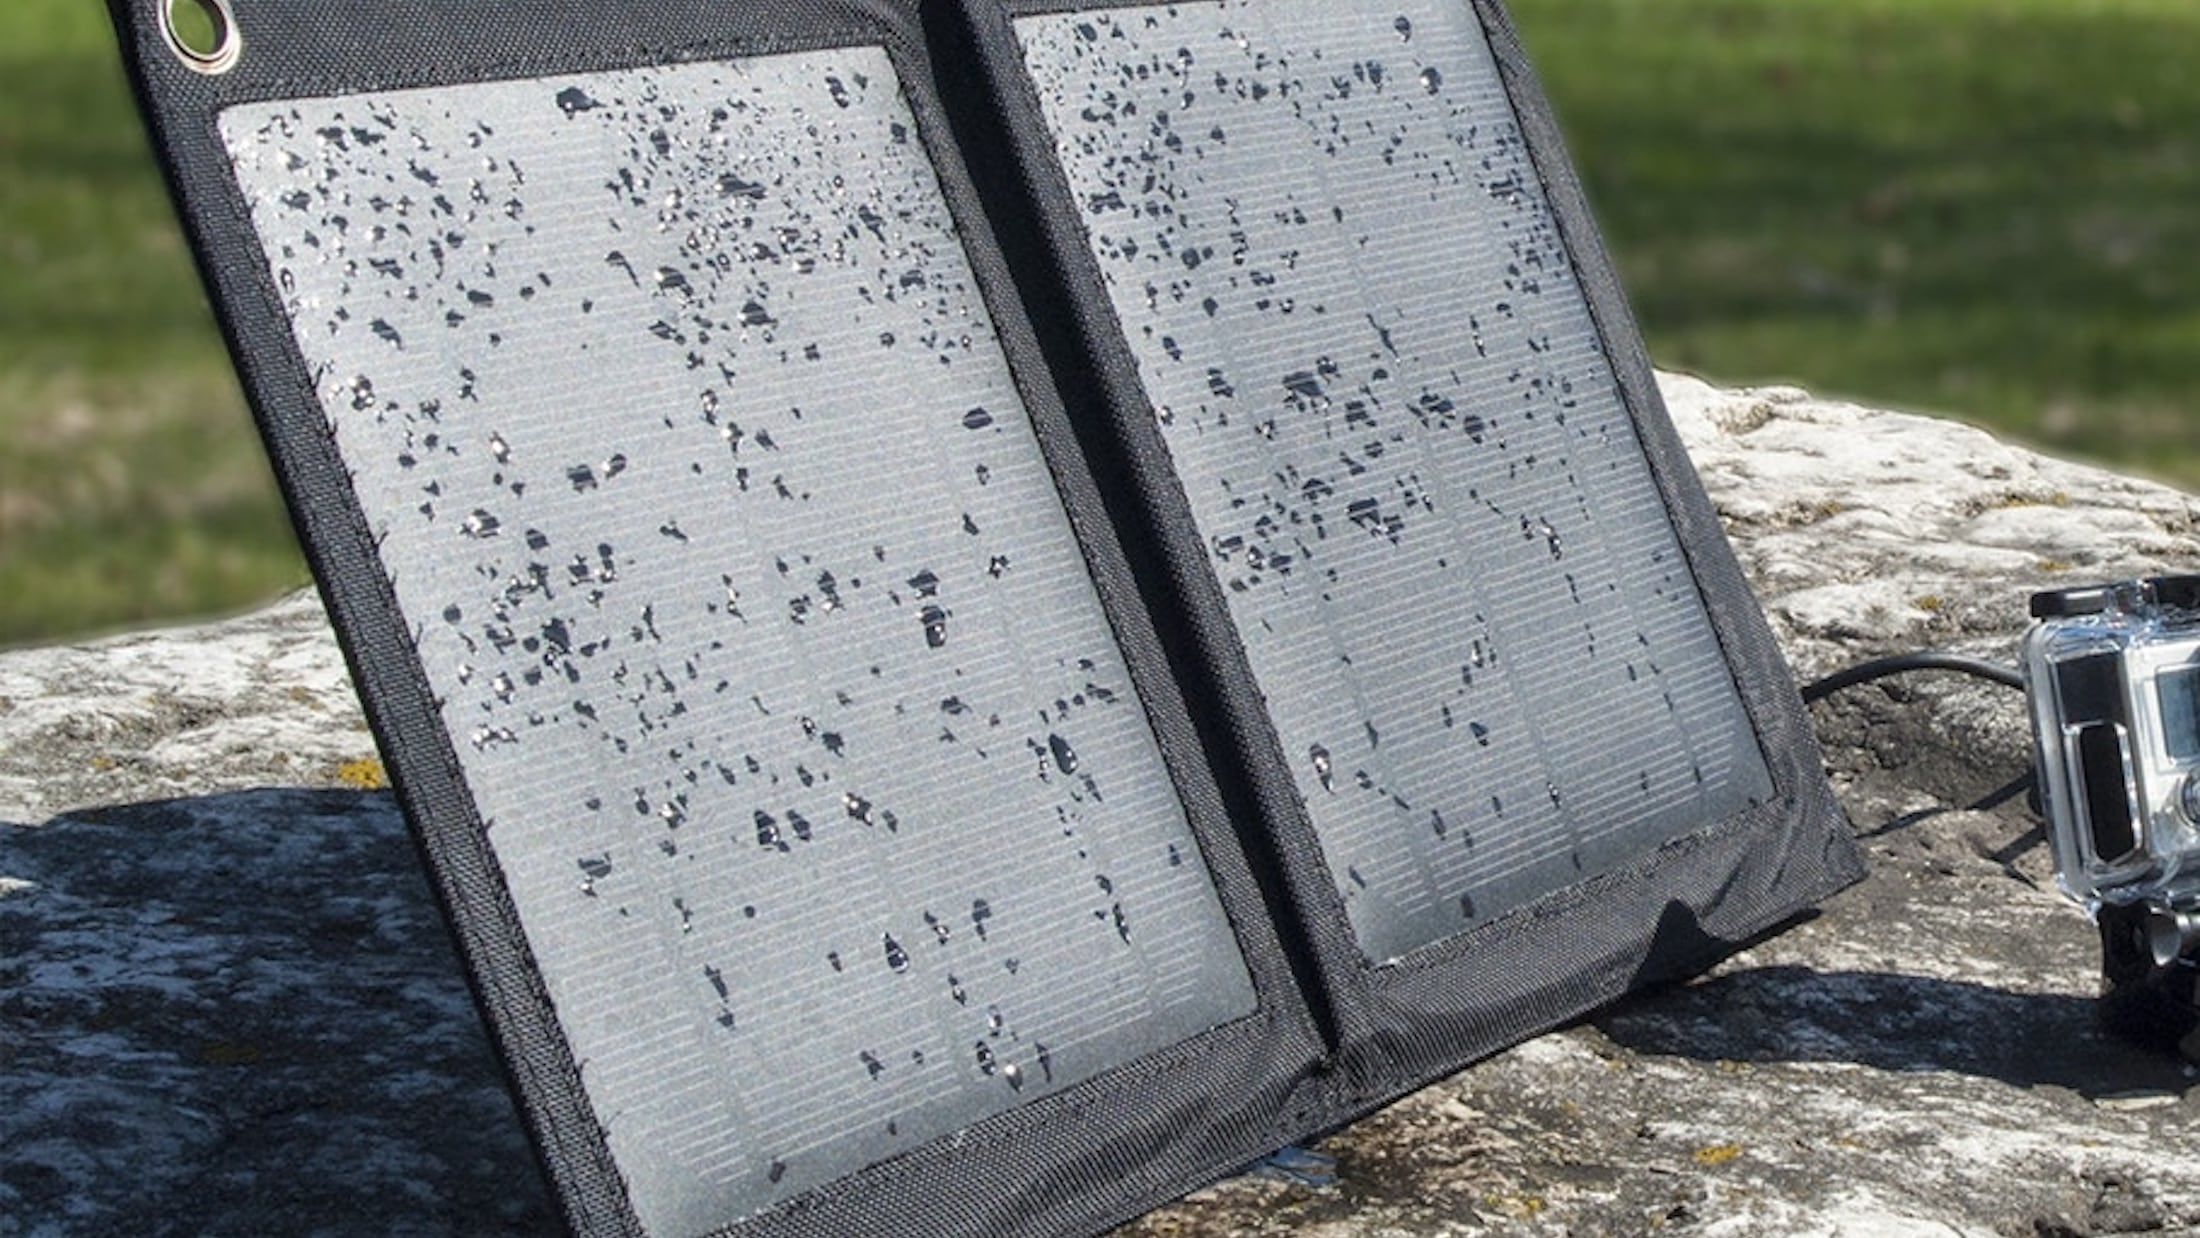 Badger Waterproof USB Solar Charger keeps your off the grid adventures totally powered up